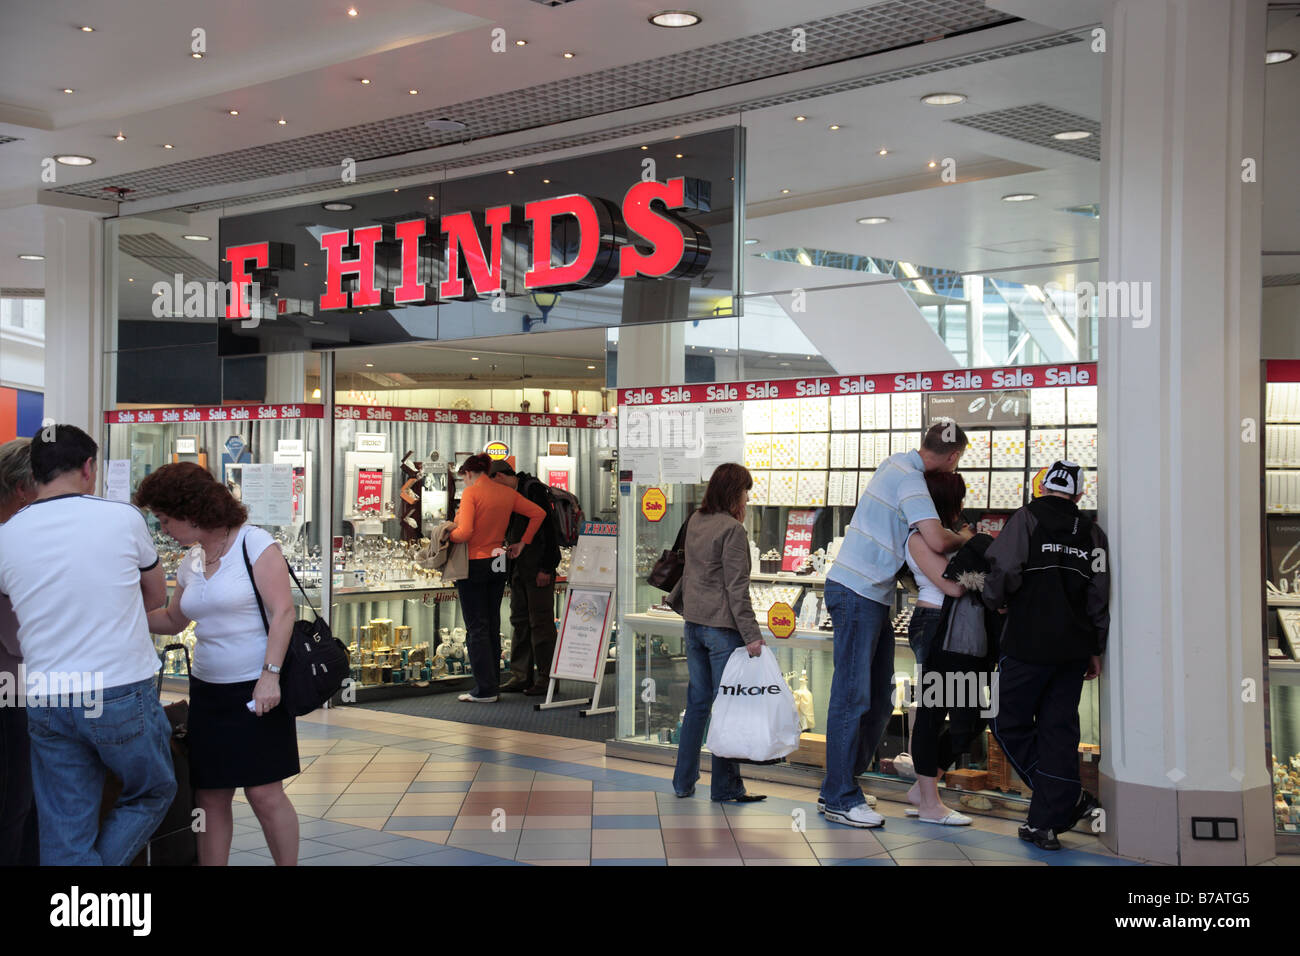 f hinds store octagon shopping centre burtonupontrent